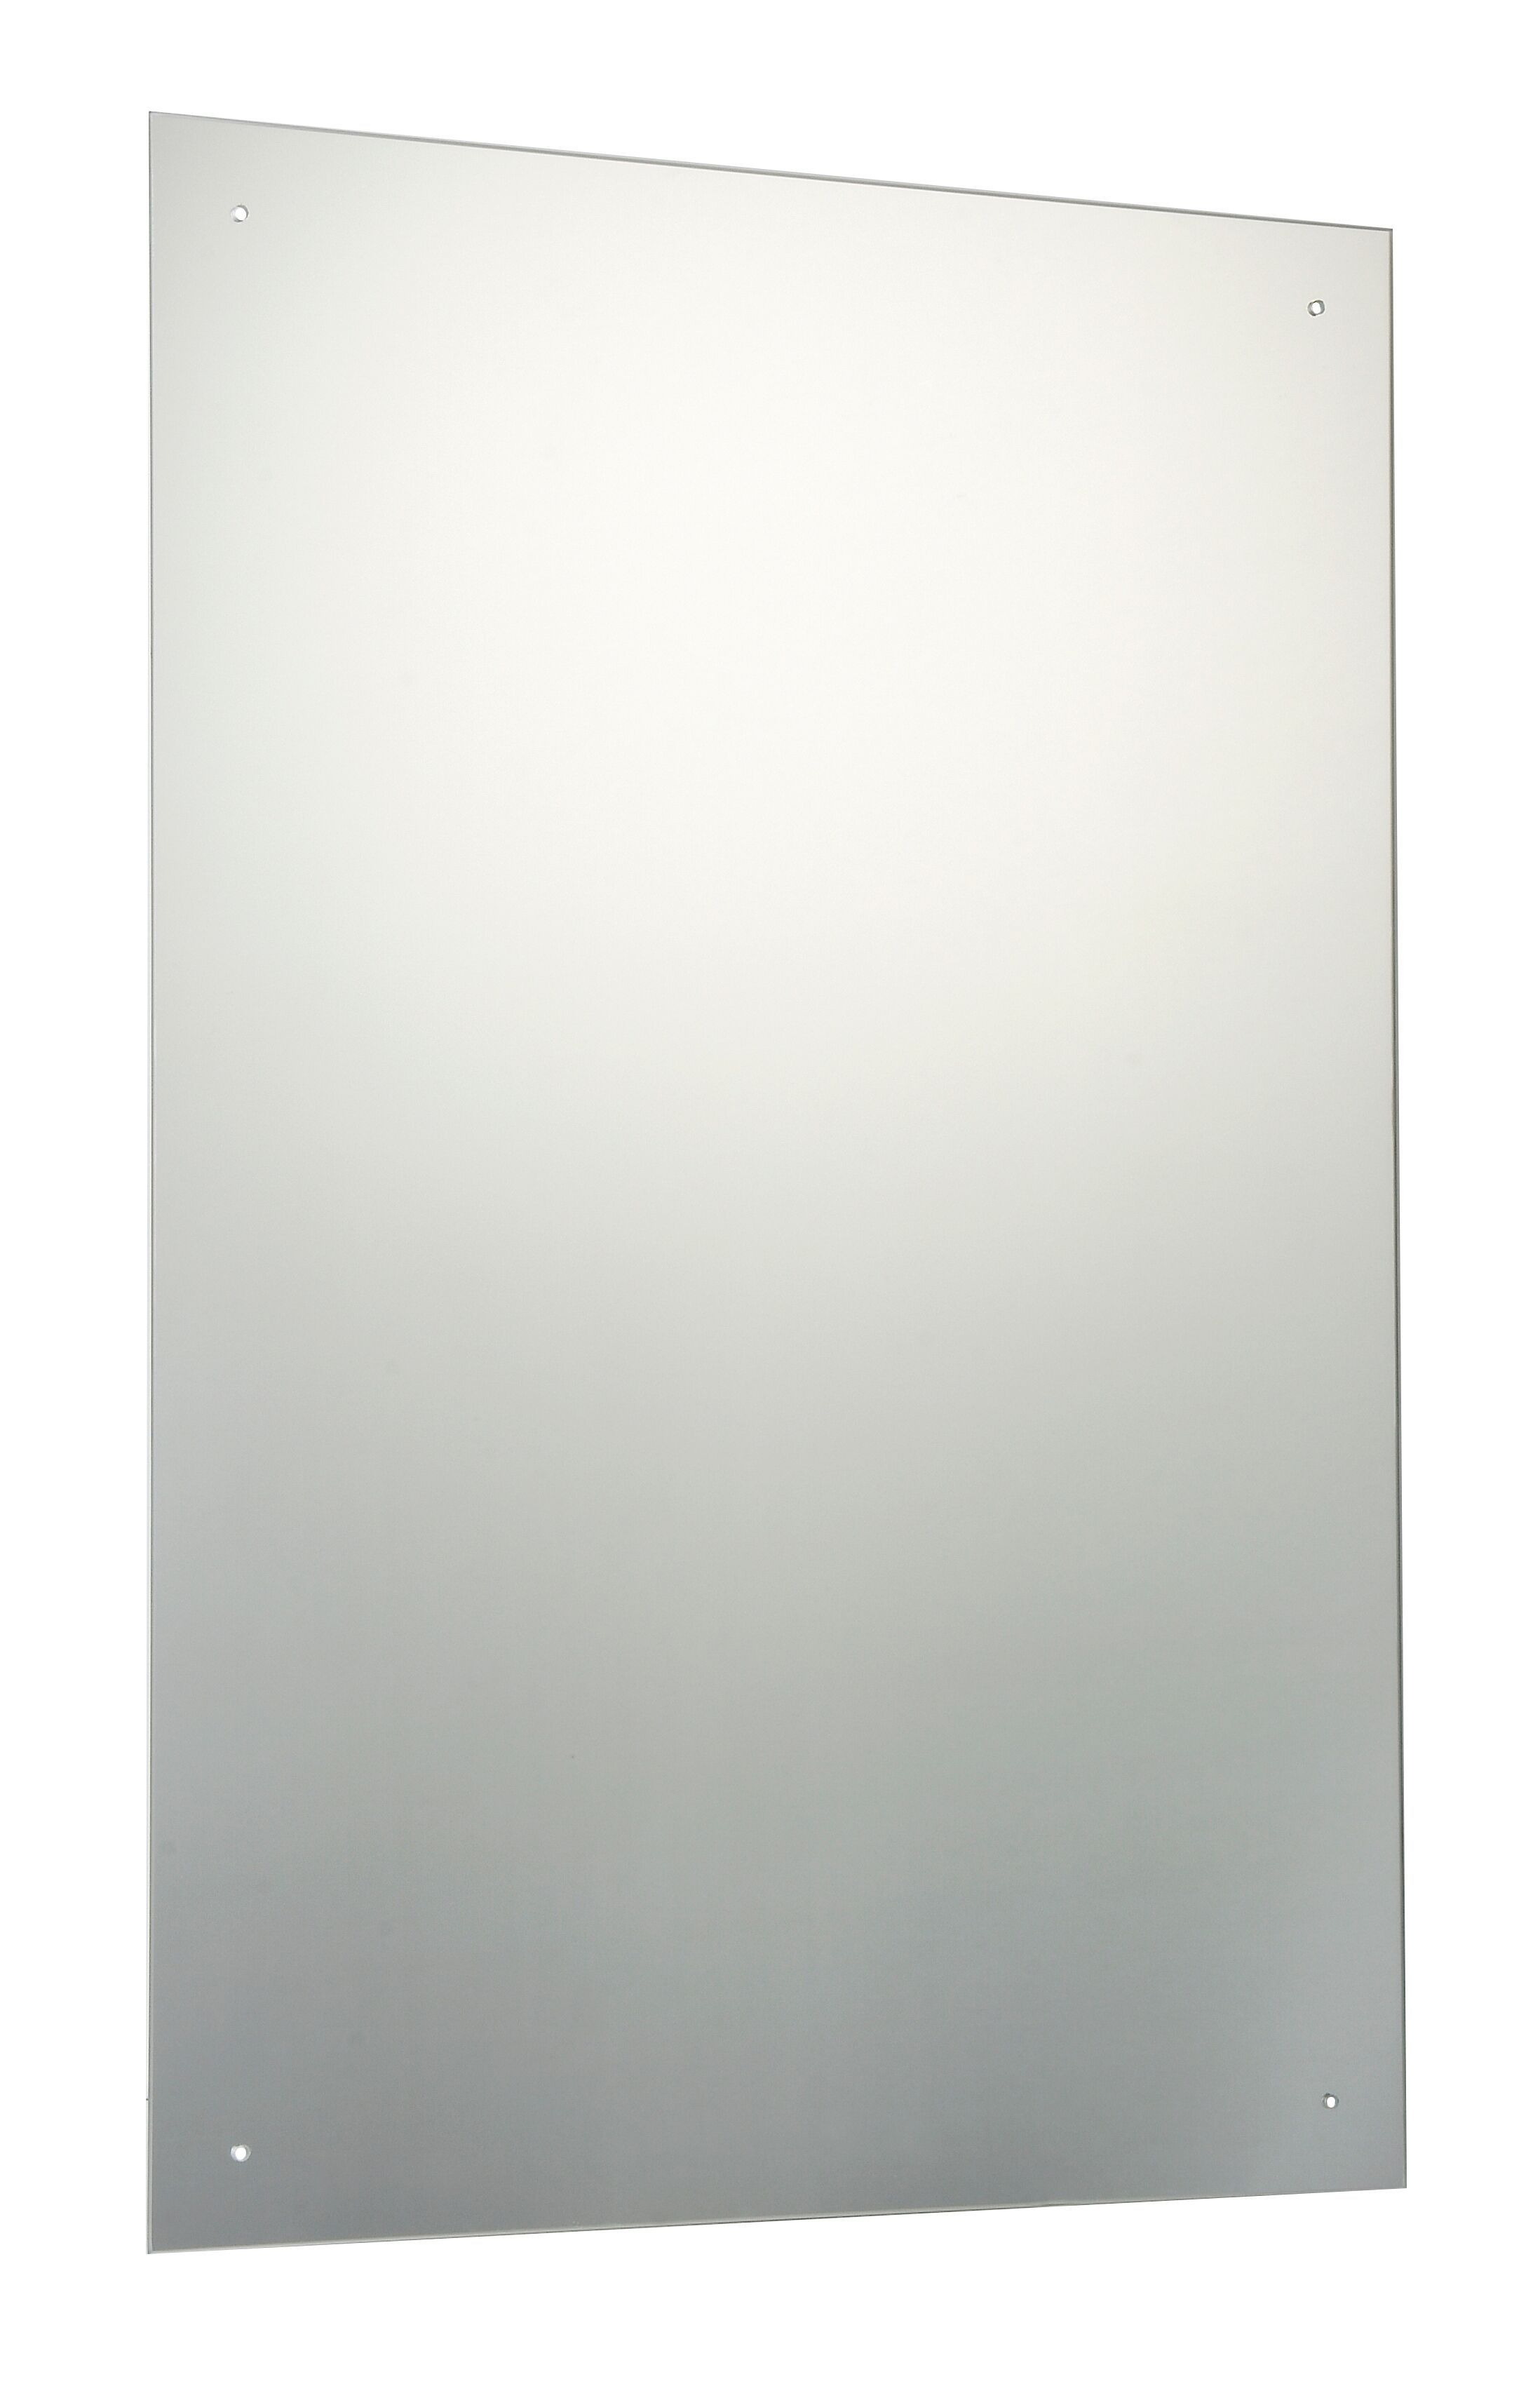 Unframed Rectangular Mirror H 900mm W 600mm